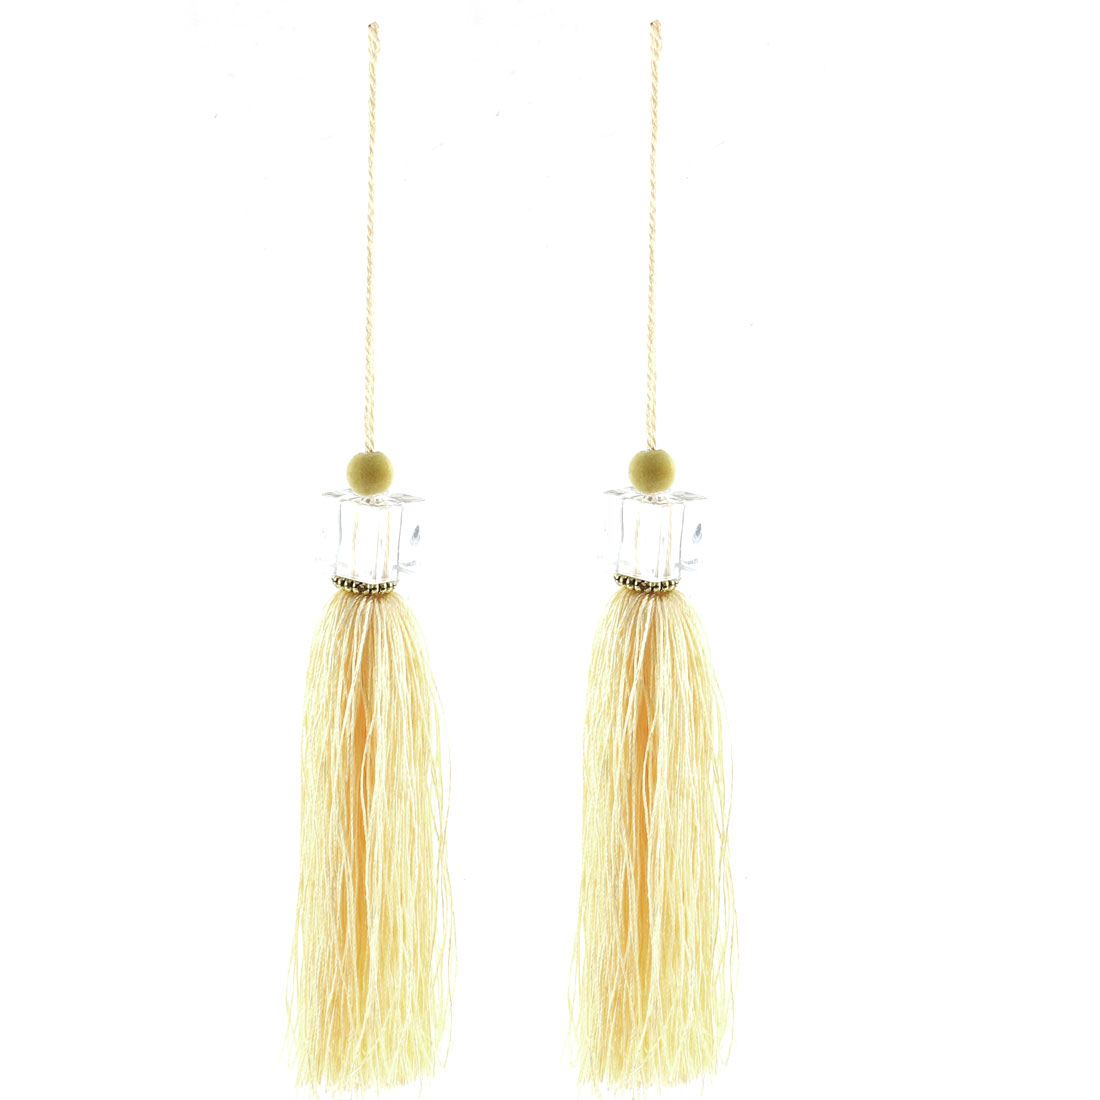 2Pcs Silky Tassels Pendant Sewing DIY Craft Supply Curtain Drapery Deco Light Yellow